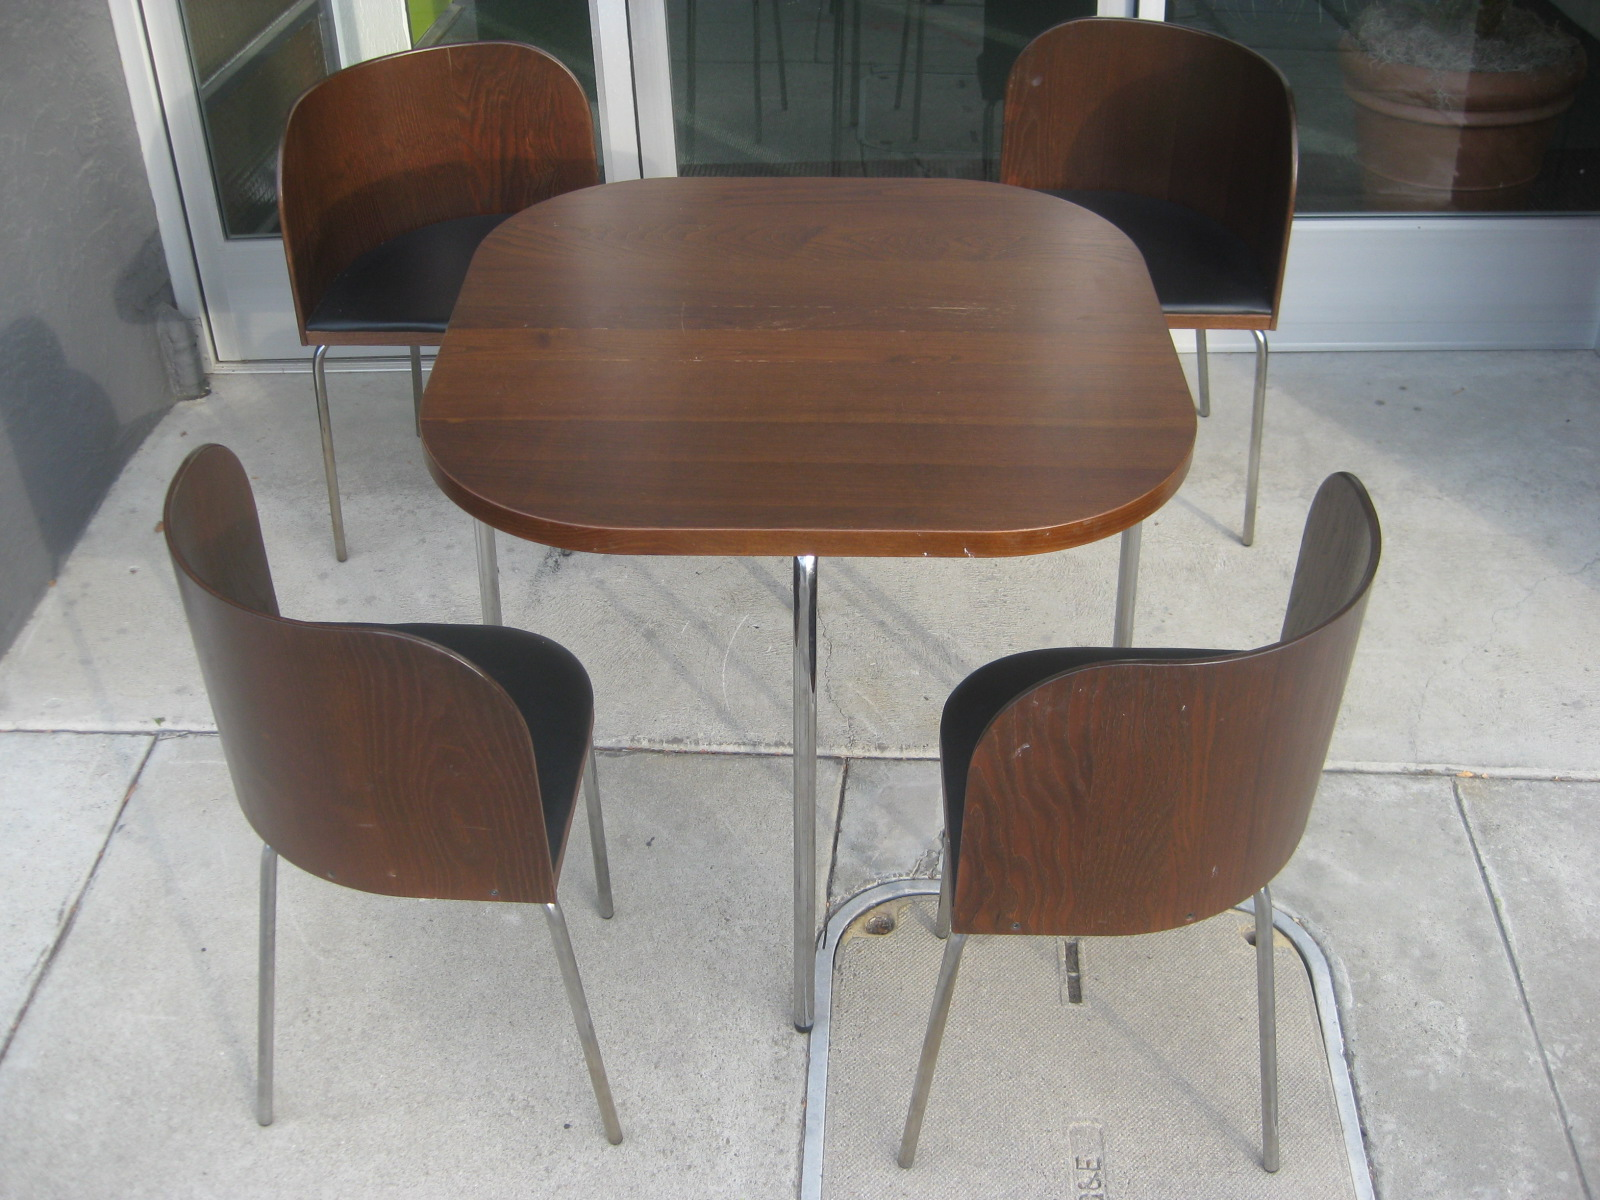 Sold Ikea Fusion Table And 4 Chairs 150